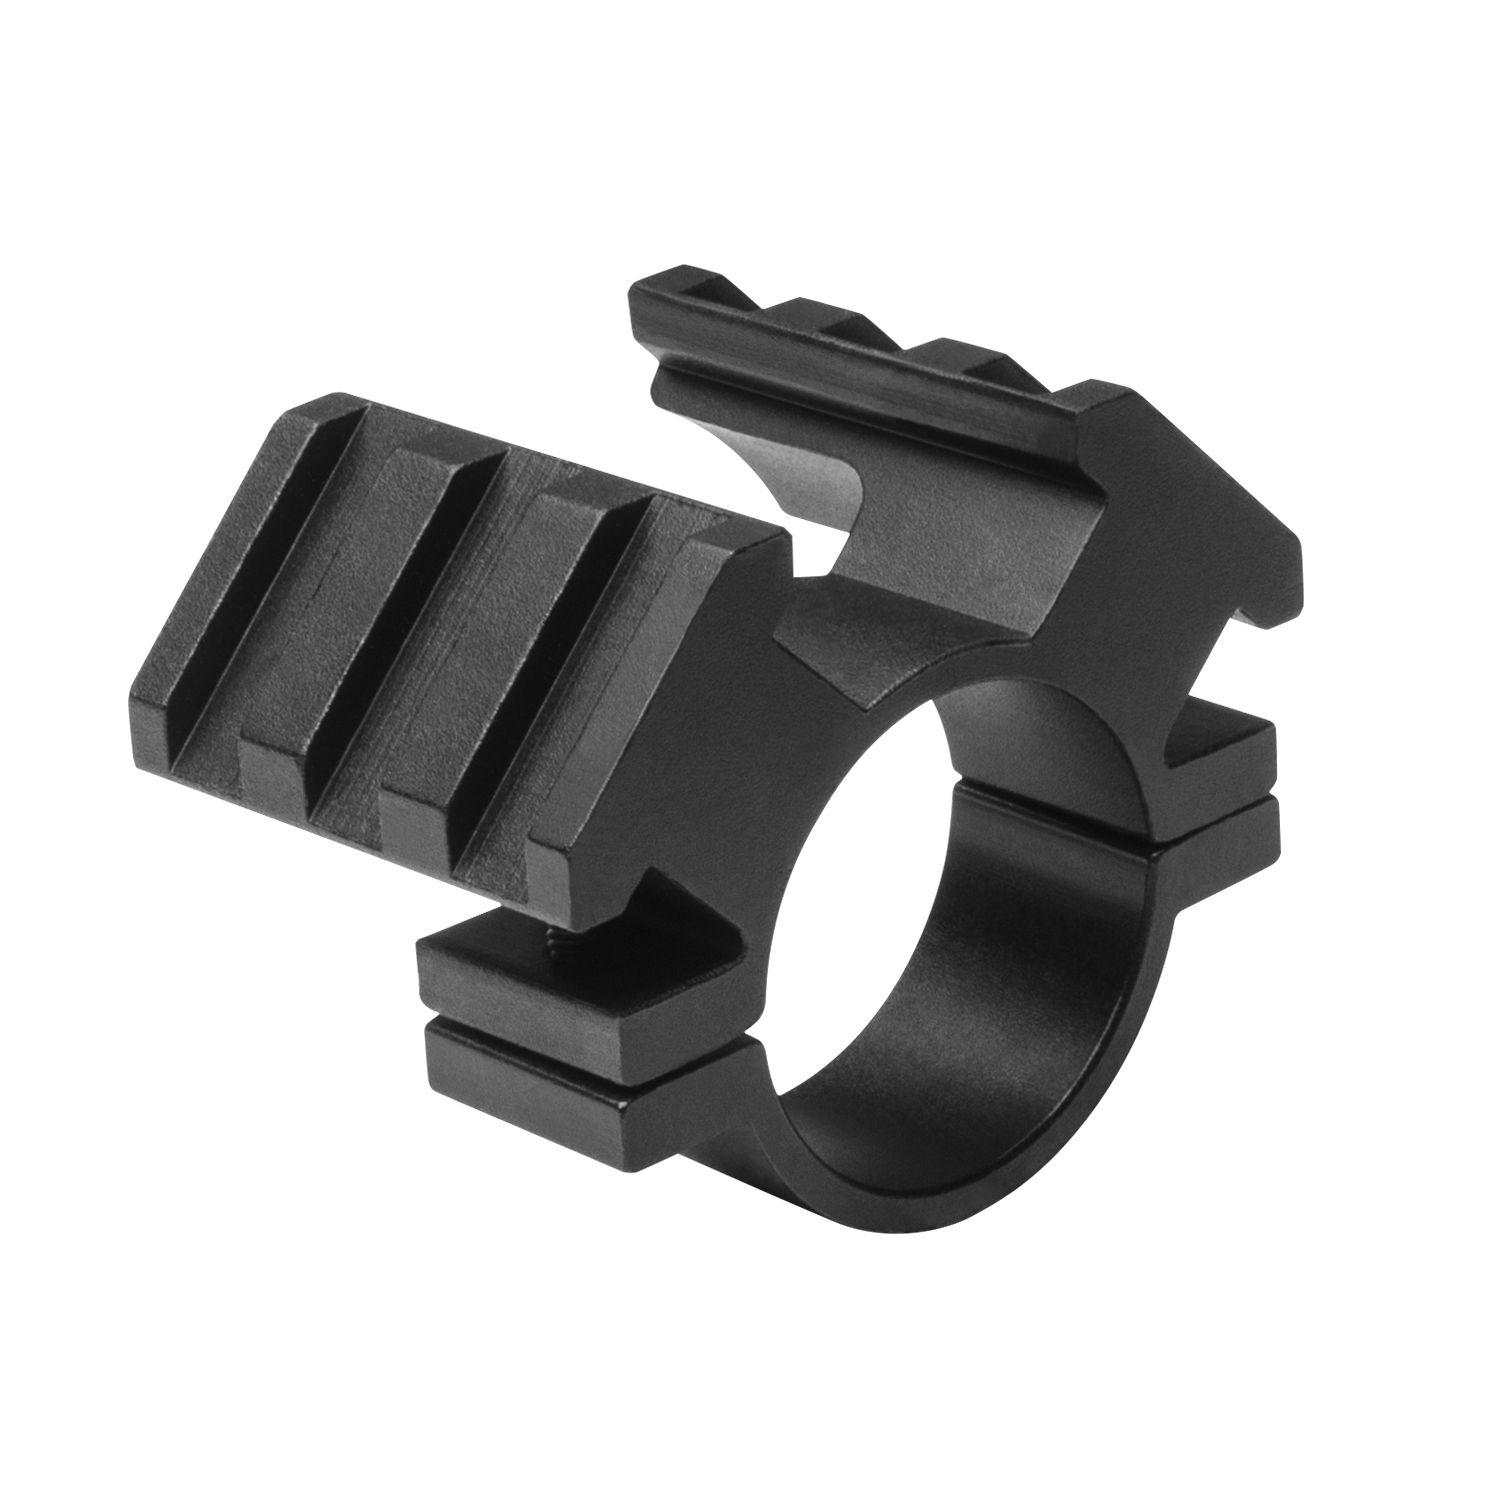 Ncstar 1 Inch Rifle Scope Adapter Double Weaver Base